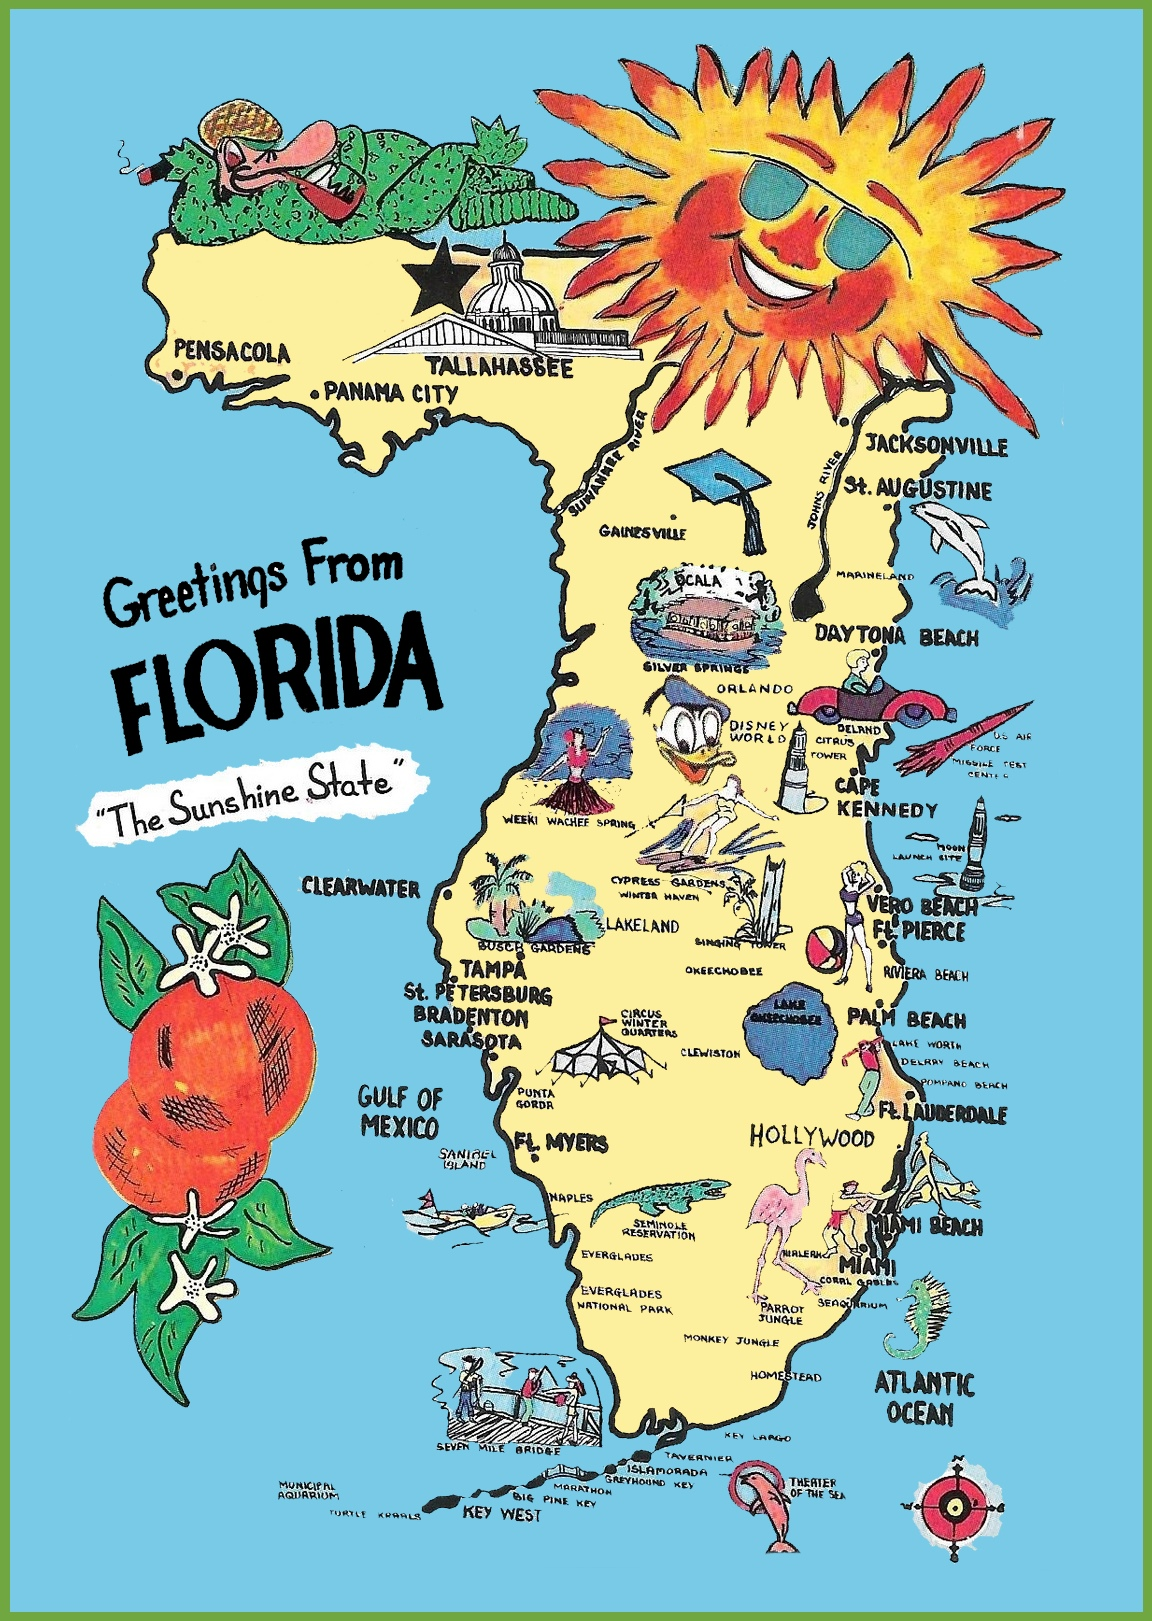 Pictorial travel map of Florida